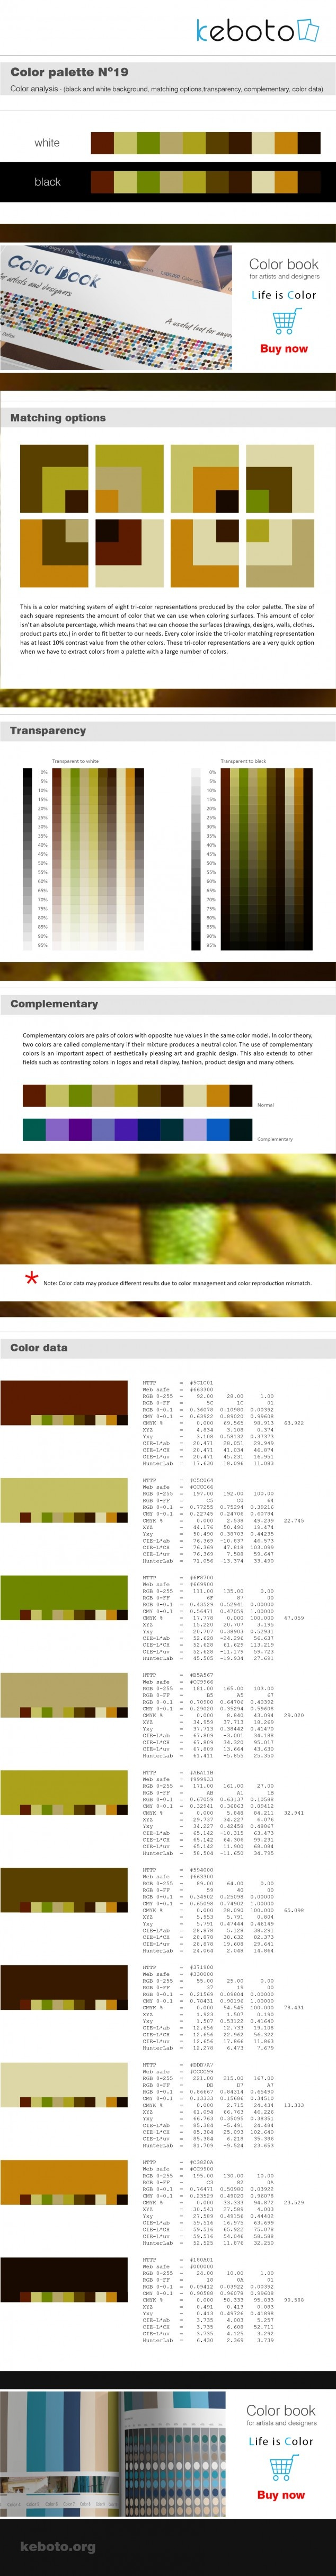 Keboto - Color Palette No19